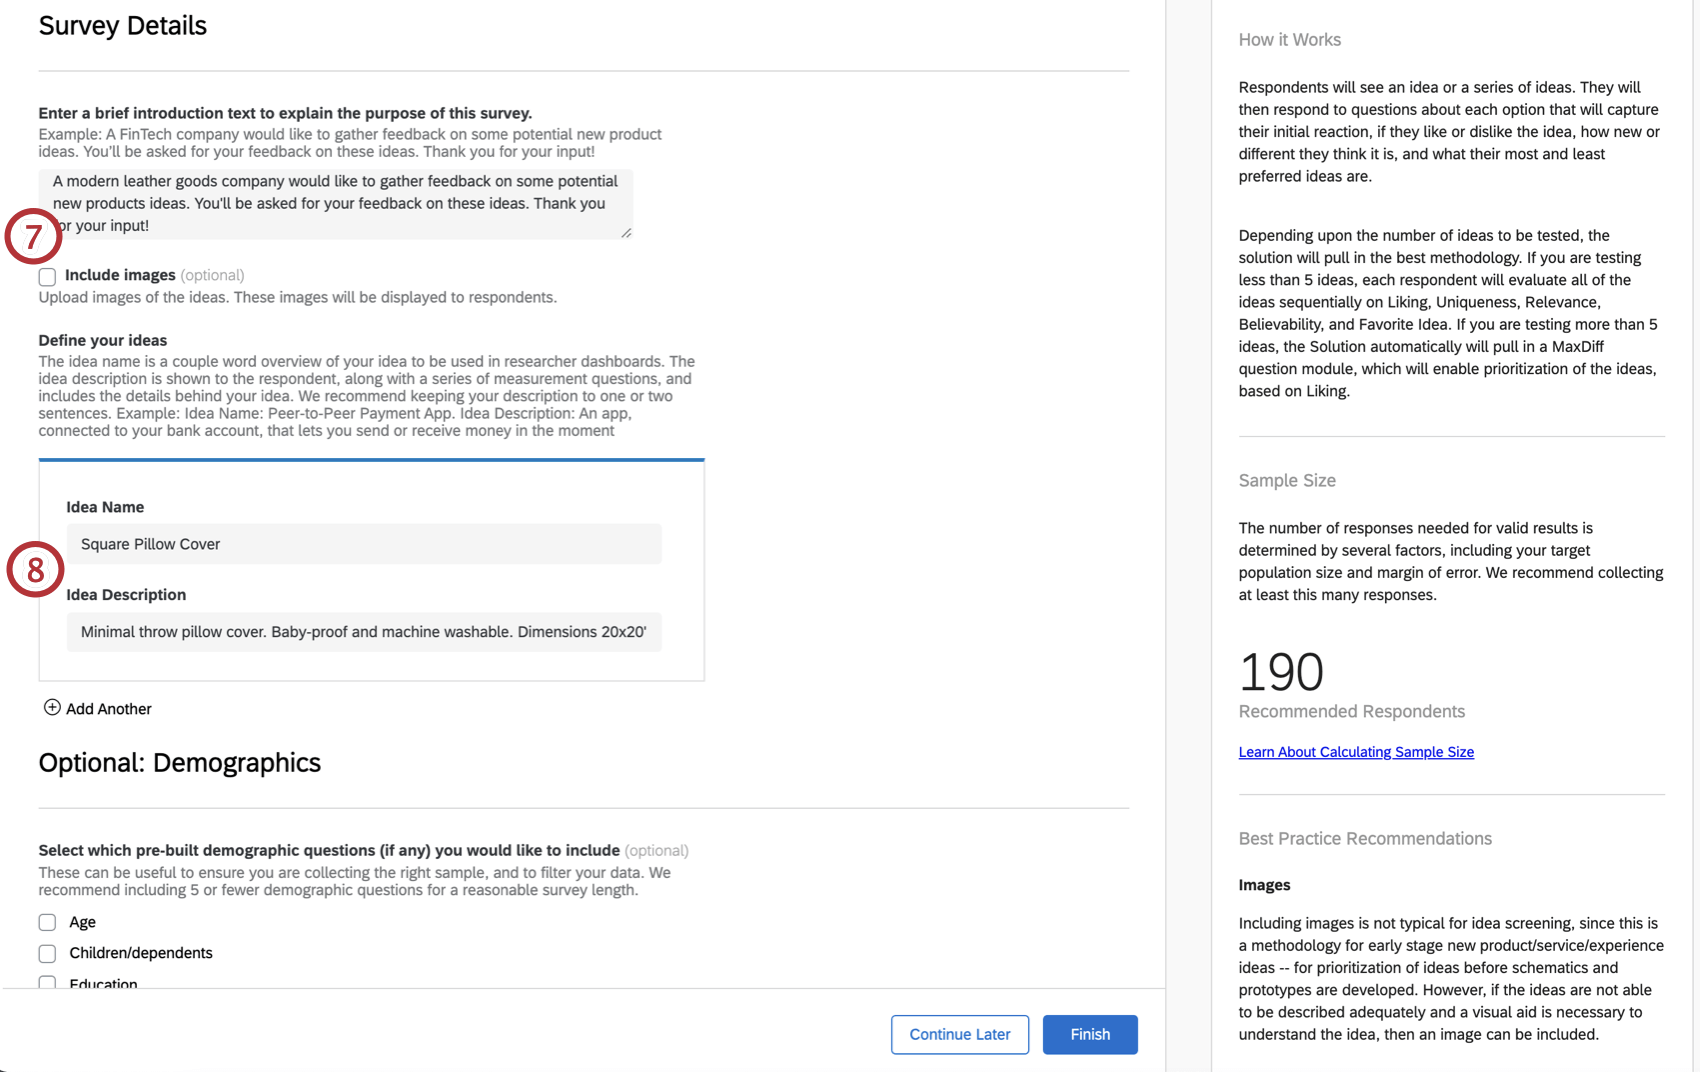 Guided setup for adding an introduction for your participants and adding product ideas